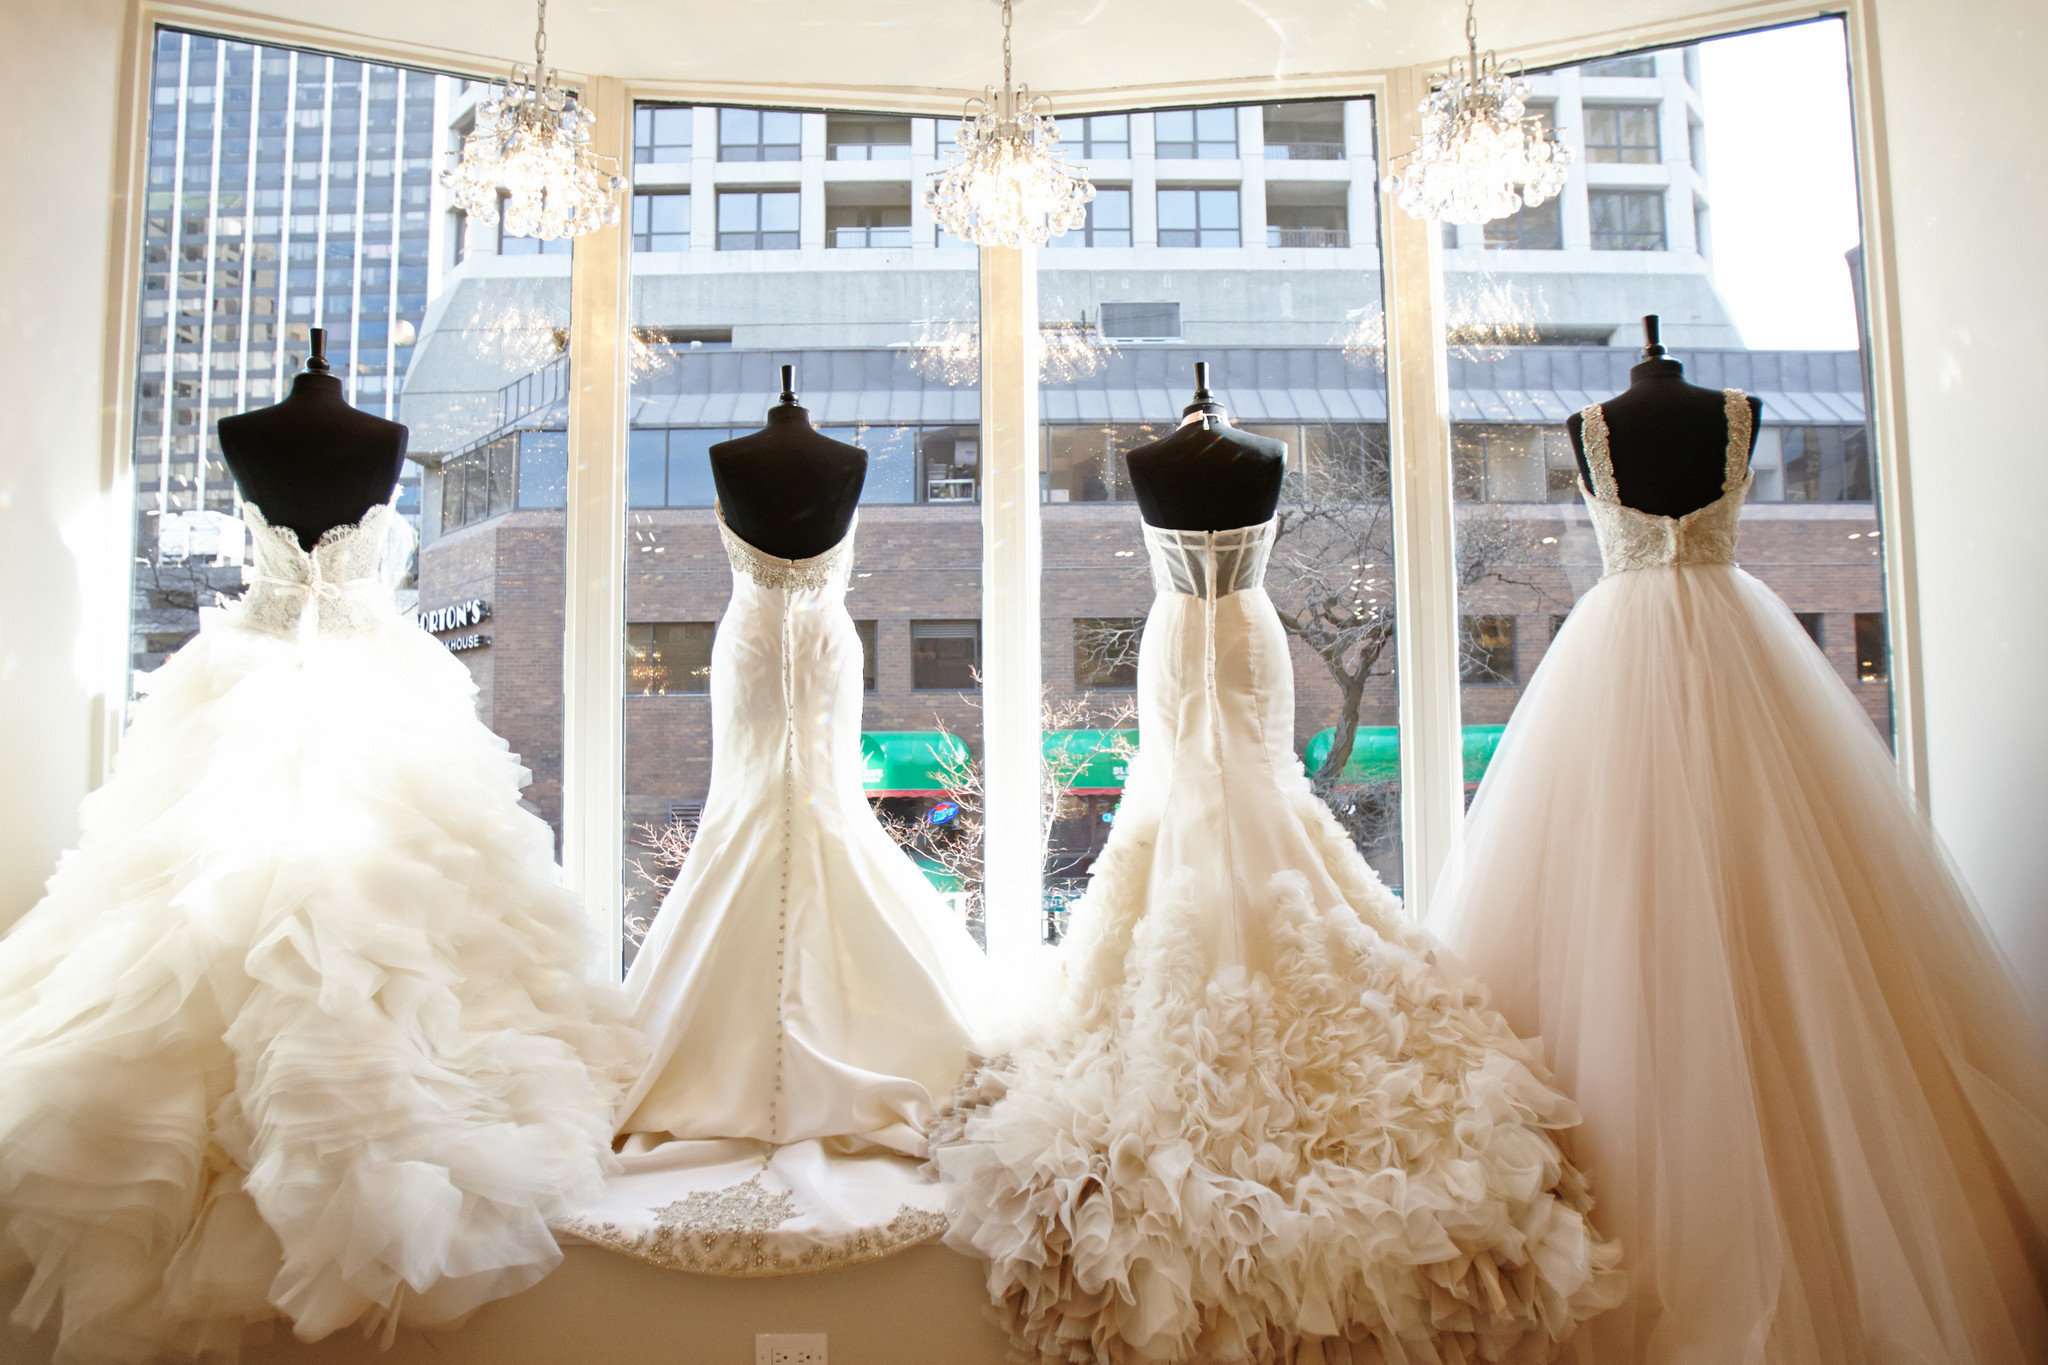 Chicago wedding shopping guide: Gold Coast - RedEye Chicago